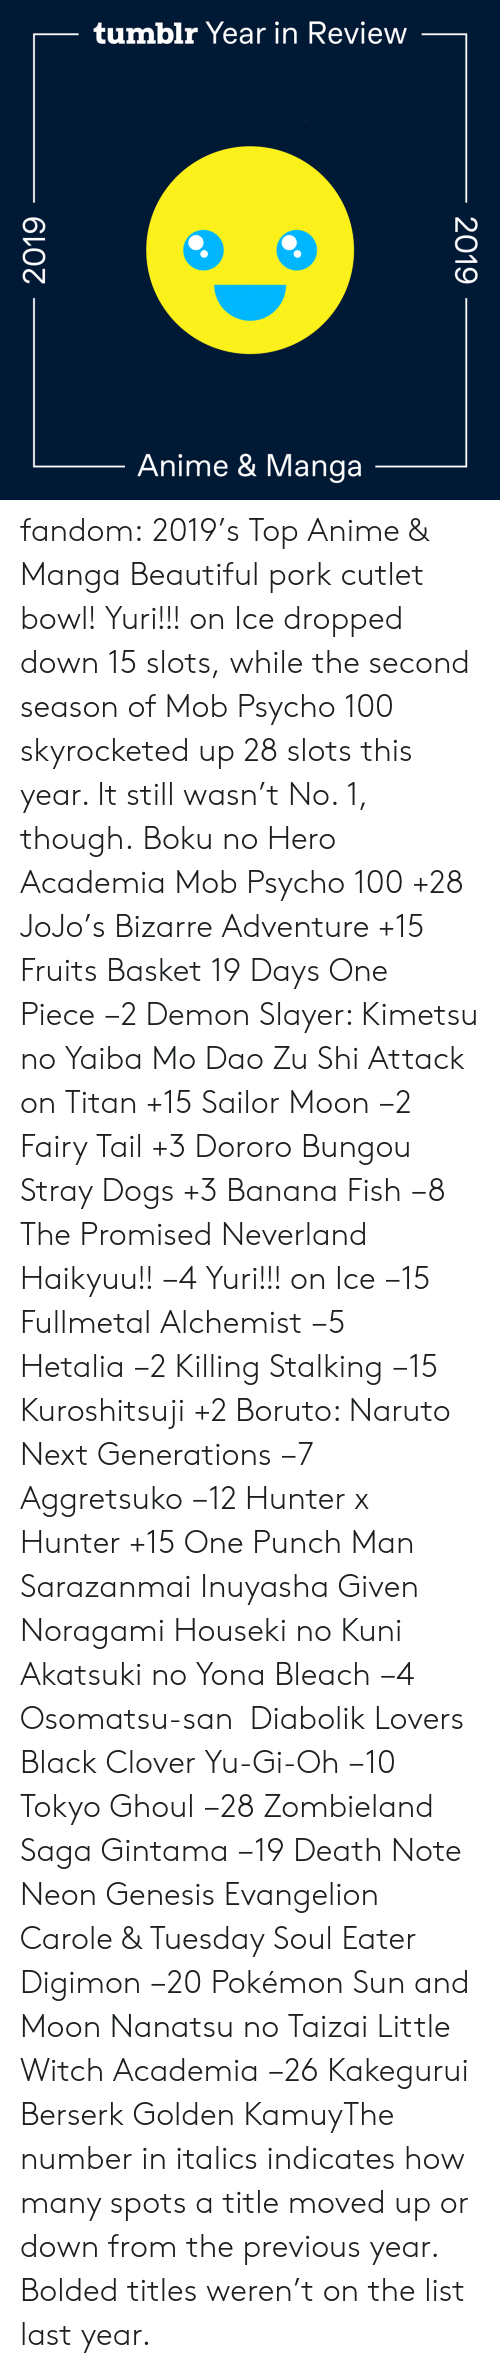 Bleach: tumblr Year in Review  Anime & Manga  2019  2019 fandom:  2019's Top Anime & Manga  Beautiful pork cutlet bowl! Yuri!!! on Ice dropped down 15 slots, while the second season of Mob Psycho 100 skyrocketed up 28 slots this year. It still wasn't No. 1, though.  Boku no Hero Academia  Mob Psycho 100 +28  JoJo's Bizarre Adventure +15  Fruits Basket  19 Days  One Piece −2  Demon Slayer: Kimetsu no Yaiba  Mo Dao Zu Shi  Attack on Titan +15  Sailor Moon −2  Fairy Tail +3  Dororo  Bungou Stray Dogs +3  Banana Fish −8  The Promised Neverland  Haikyuu!! −4  Yuri!!! on Ice −15  Fullmetal Alchemist −5  Hetalia −2  Killing Stalking −15  Kuroshitsuji +2  Boruto: Naruto Next Generations −7  Aggretsuko −12  Hunter x Hunter +15  One Punch Man  Sarazanmai  Inuyasha  Given  Noragami  Houseki no Kuni  Akatsuki no Yona  Bleach −4  Osomatsu-san   Diabolik Lovers  Black Clover  Yu-Gi-Oh −10  Tokyo Ghoul −28  Zombieland Saga  Gintama −19  Death Note  Neon Genesis Evangelion  Carole & Tuesday  Soul Eater  Digimon −20  Pokémon Sun and Moon  Nanatsu no Taizai  Little Witch Academia −26  Kakegurui  Berserk Golden KamuyThe number in italics indicates how many spots a title moved up or down from the previous year. Bolded titles weren't on the list last year.